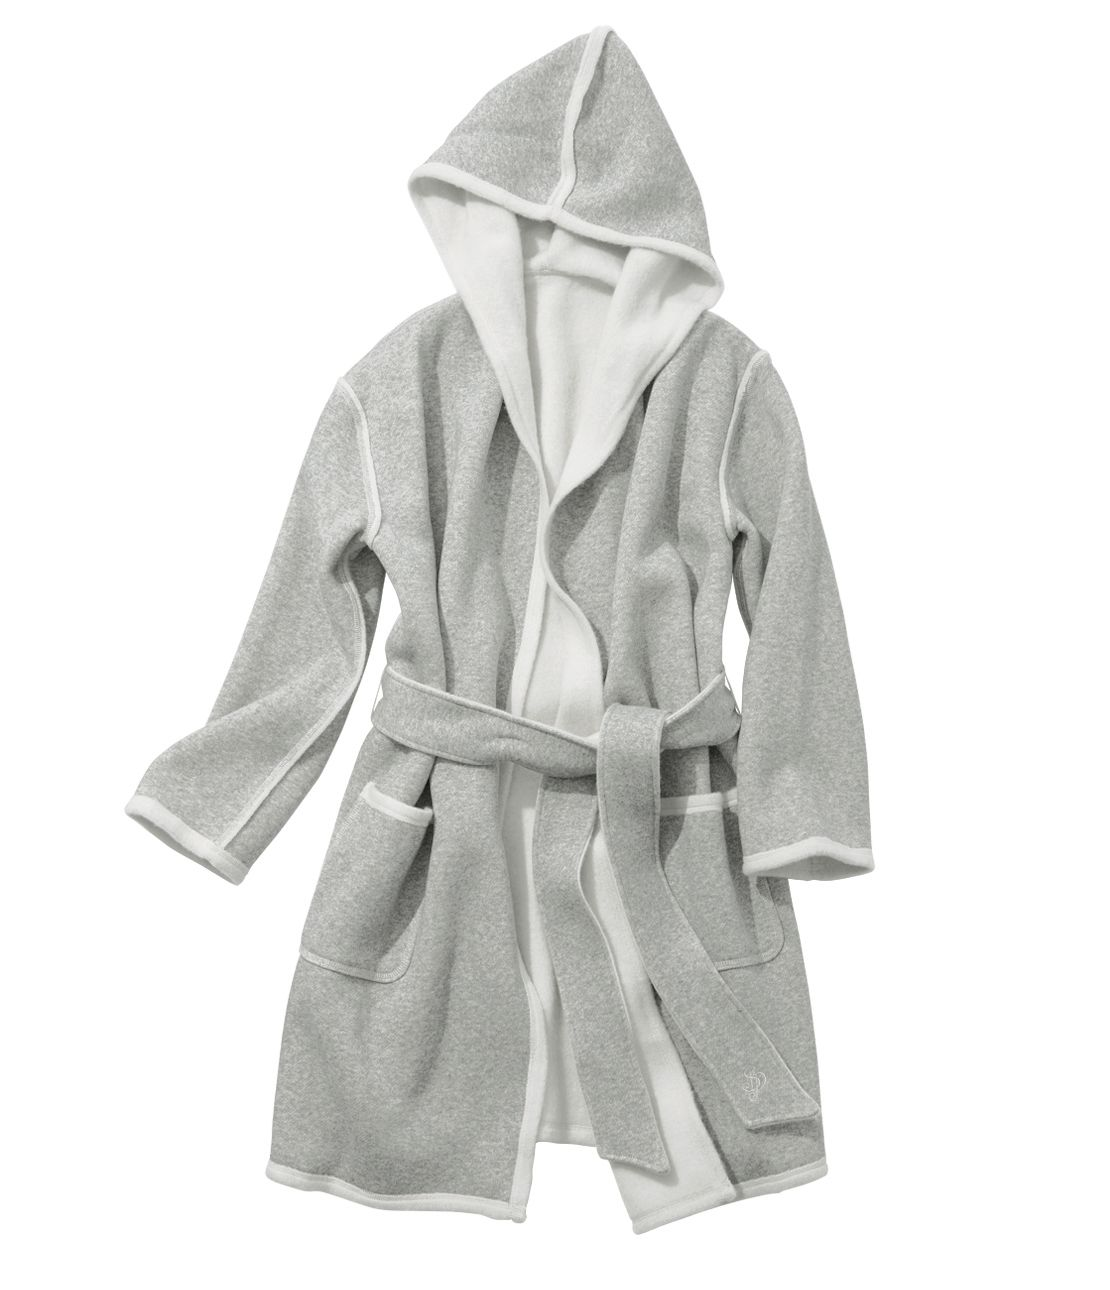 Double-Face hoody gown